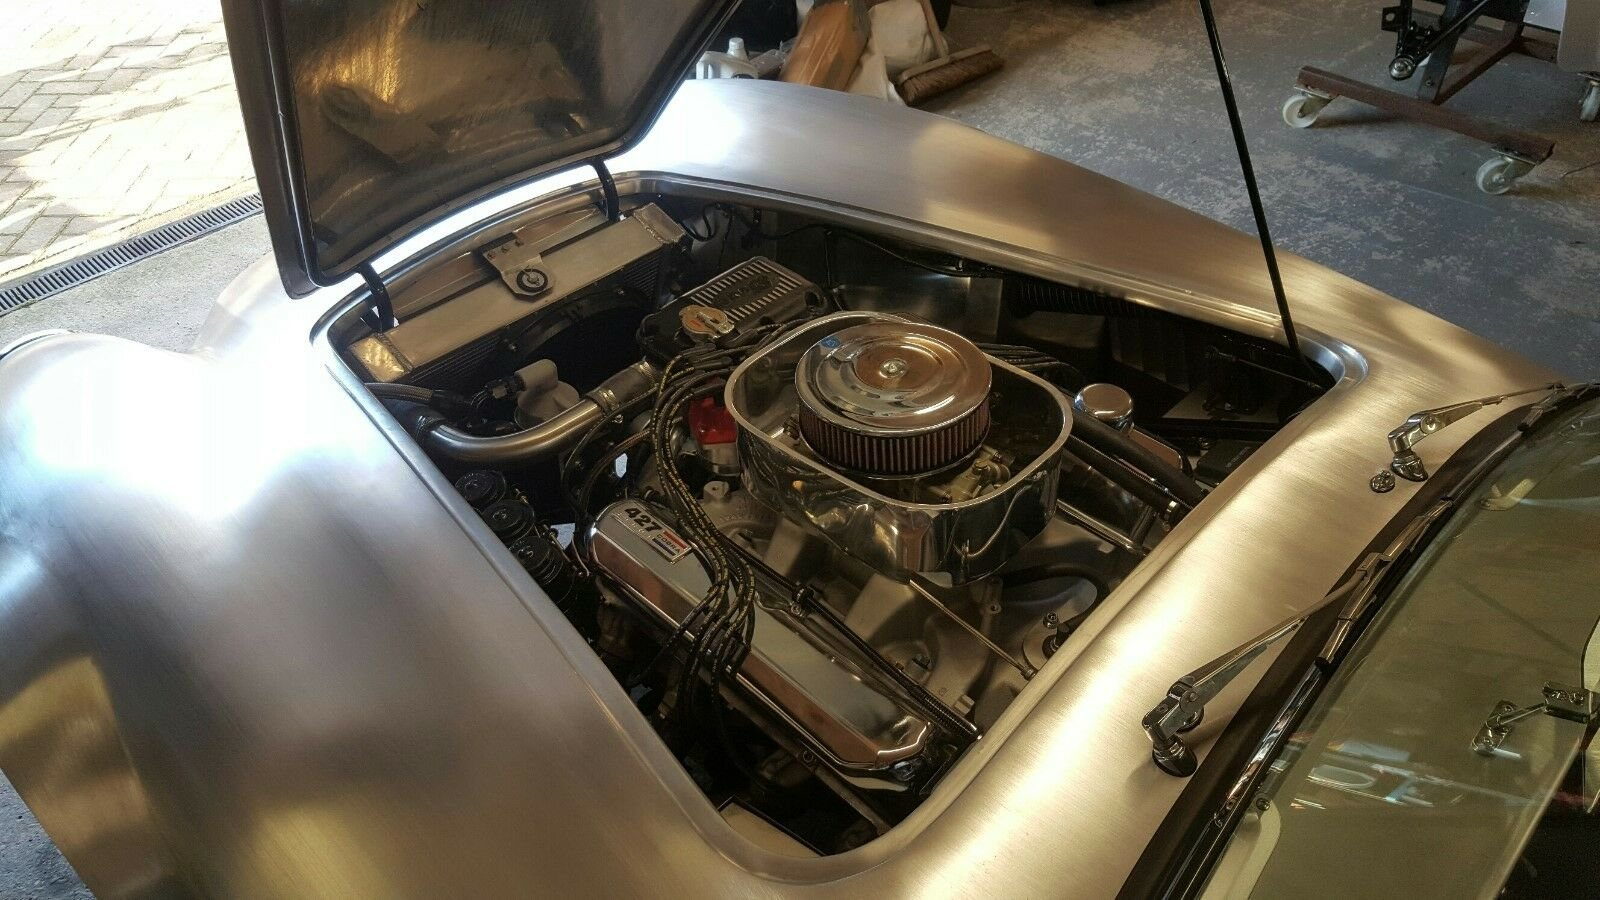 1965 Ac cobra 427 sc toolroom replica For Sale (picture 3 of 6)